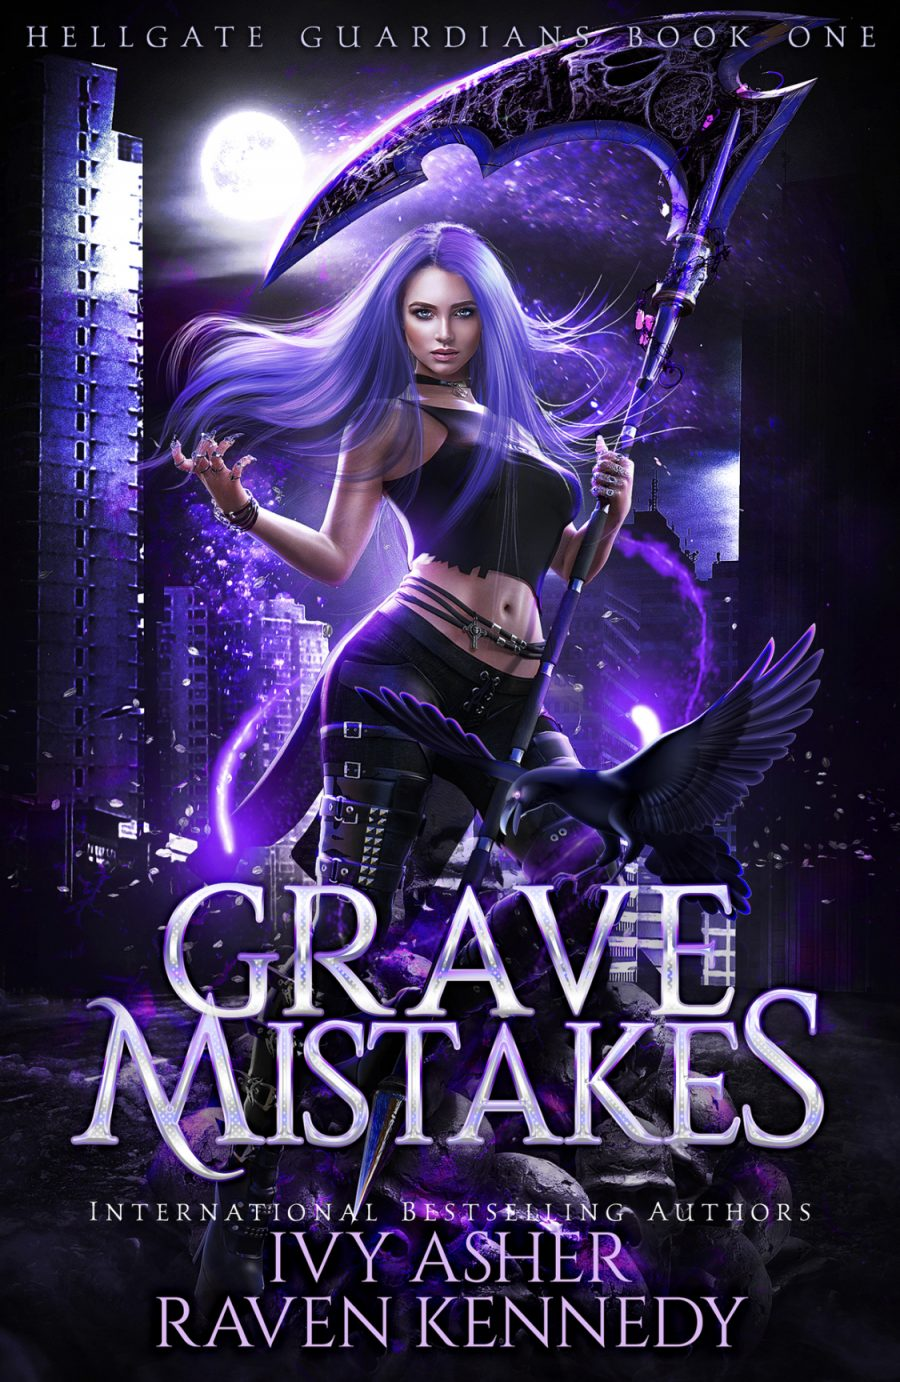 Grave Mistakes by Ivy Asher & Raven Kennedy - A Book Review #BookReview #PNR #SlowBurn #RH #5Stars #NewSeries #KindleUnlimited #KU #RapidRelease